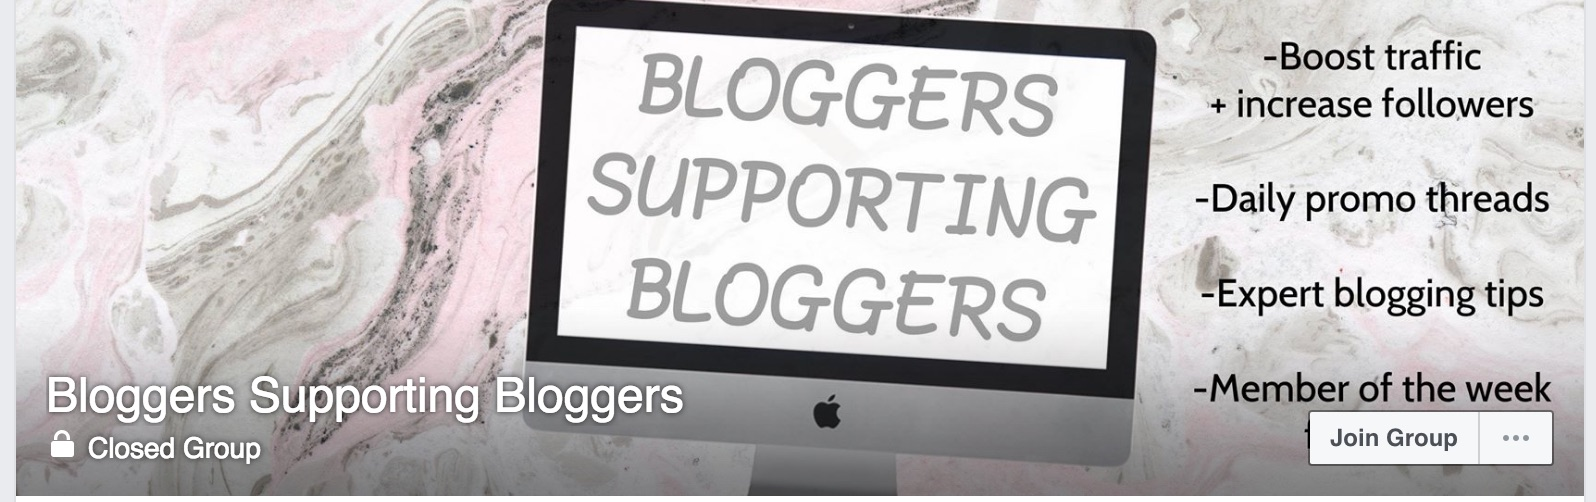 Facebook-Groups-for-Designers-Bloggers_Supporting_Bloggers